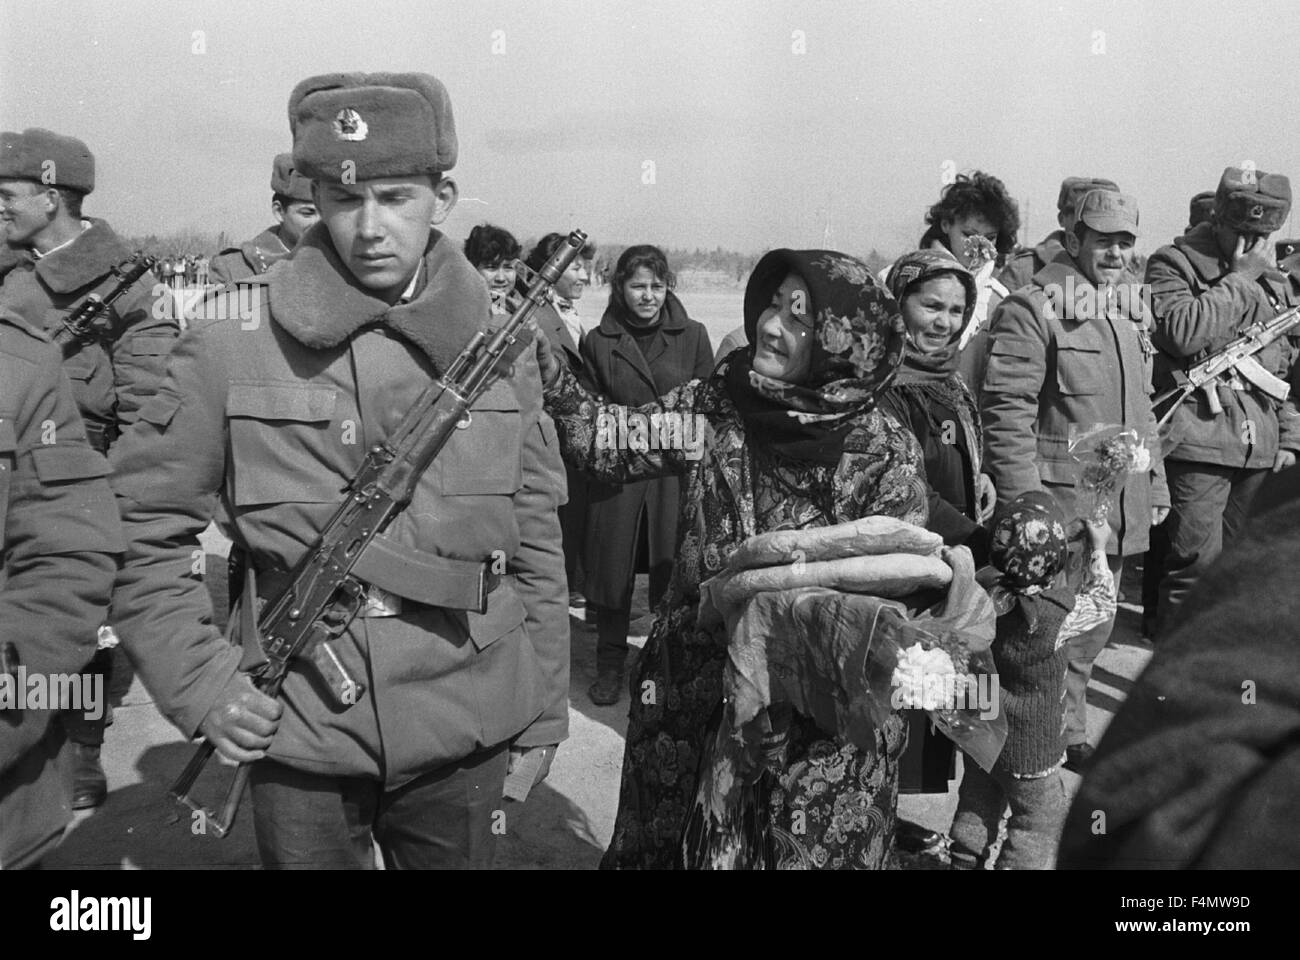 Soviet Afghanistan war - Page 6 Ussr-termez-withdrawal-of-soviet-forces-from-afghanistan-soldiers-F4MW9D